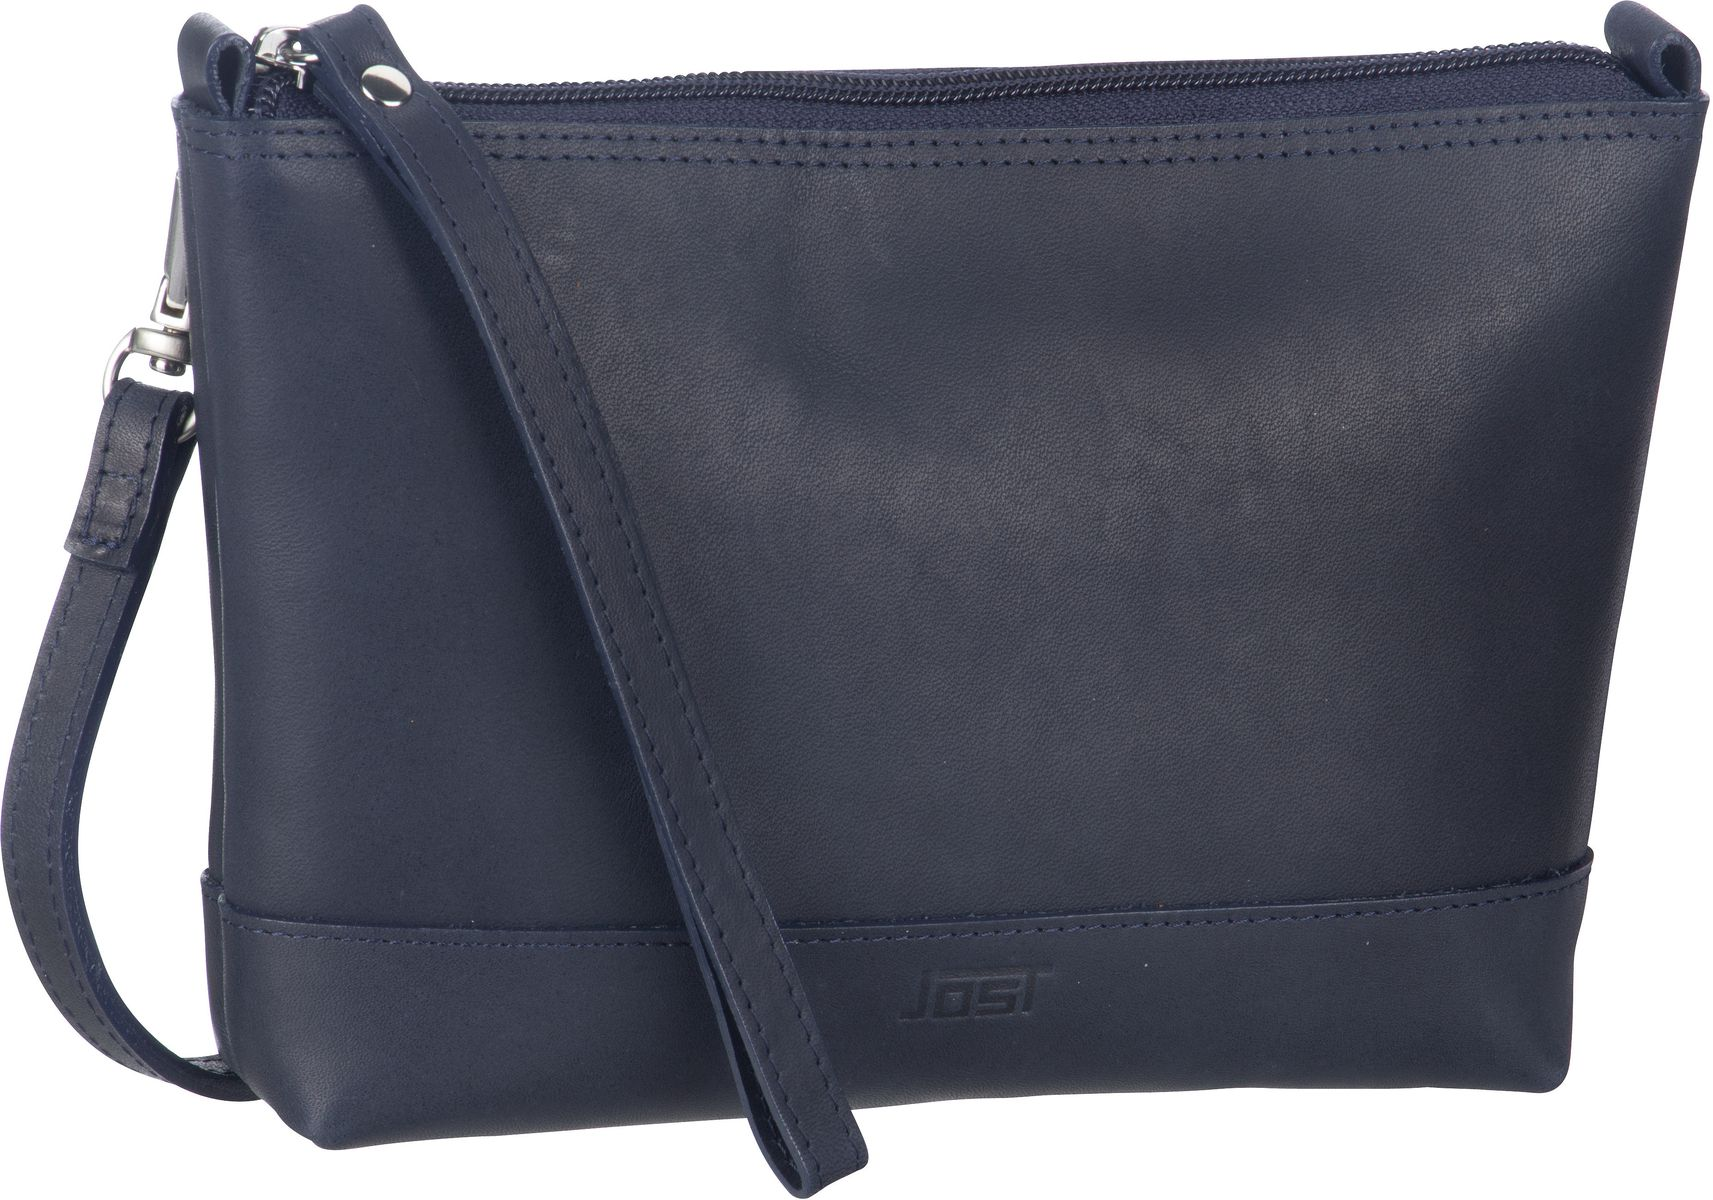 Umhängetasche Rana 1279 Belt/Shoulder Bag Navy